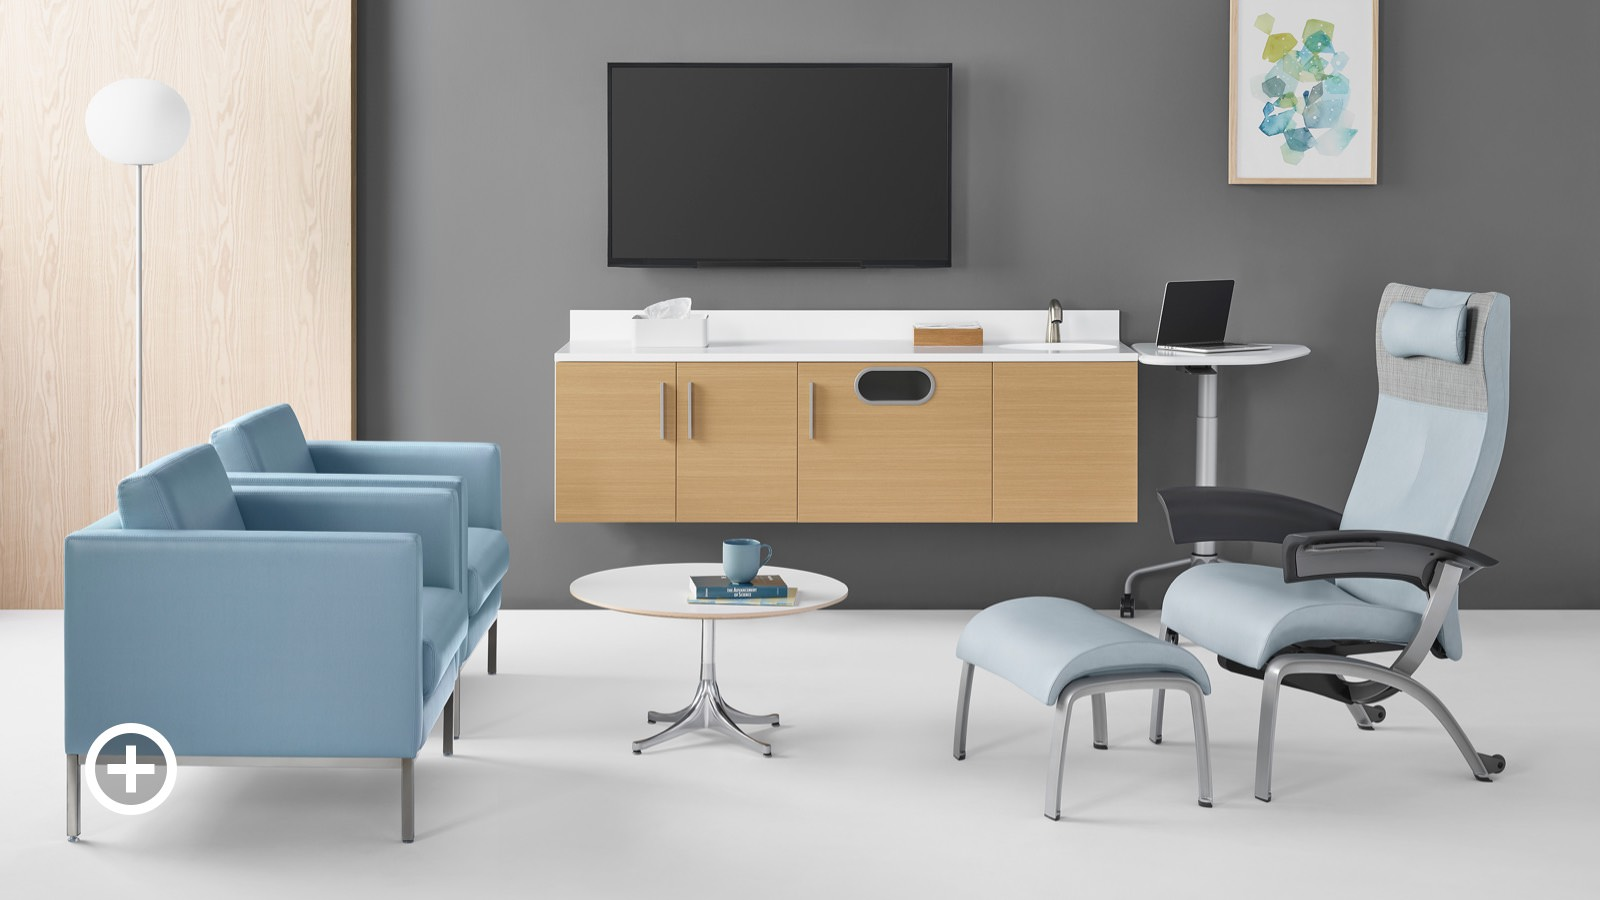 An exam room set up for consultation with Mora System casework and  an Intent mobile, height adjustable table on the back wall, two Riva lounge chairs facing a Nala patient chair and a Nelson occasional table between.